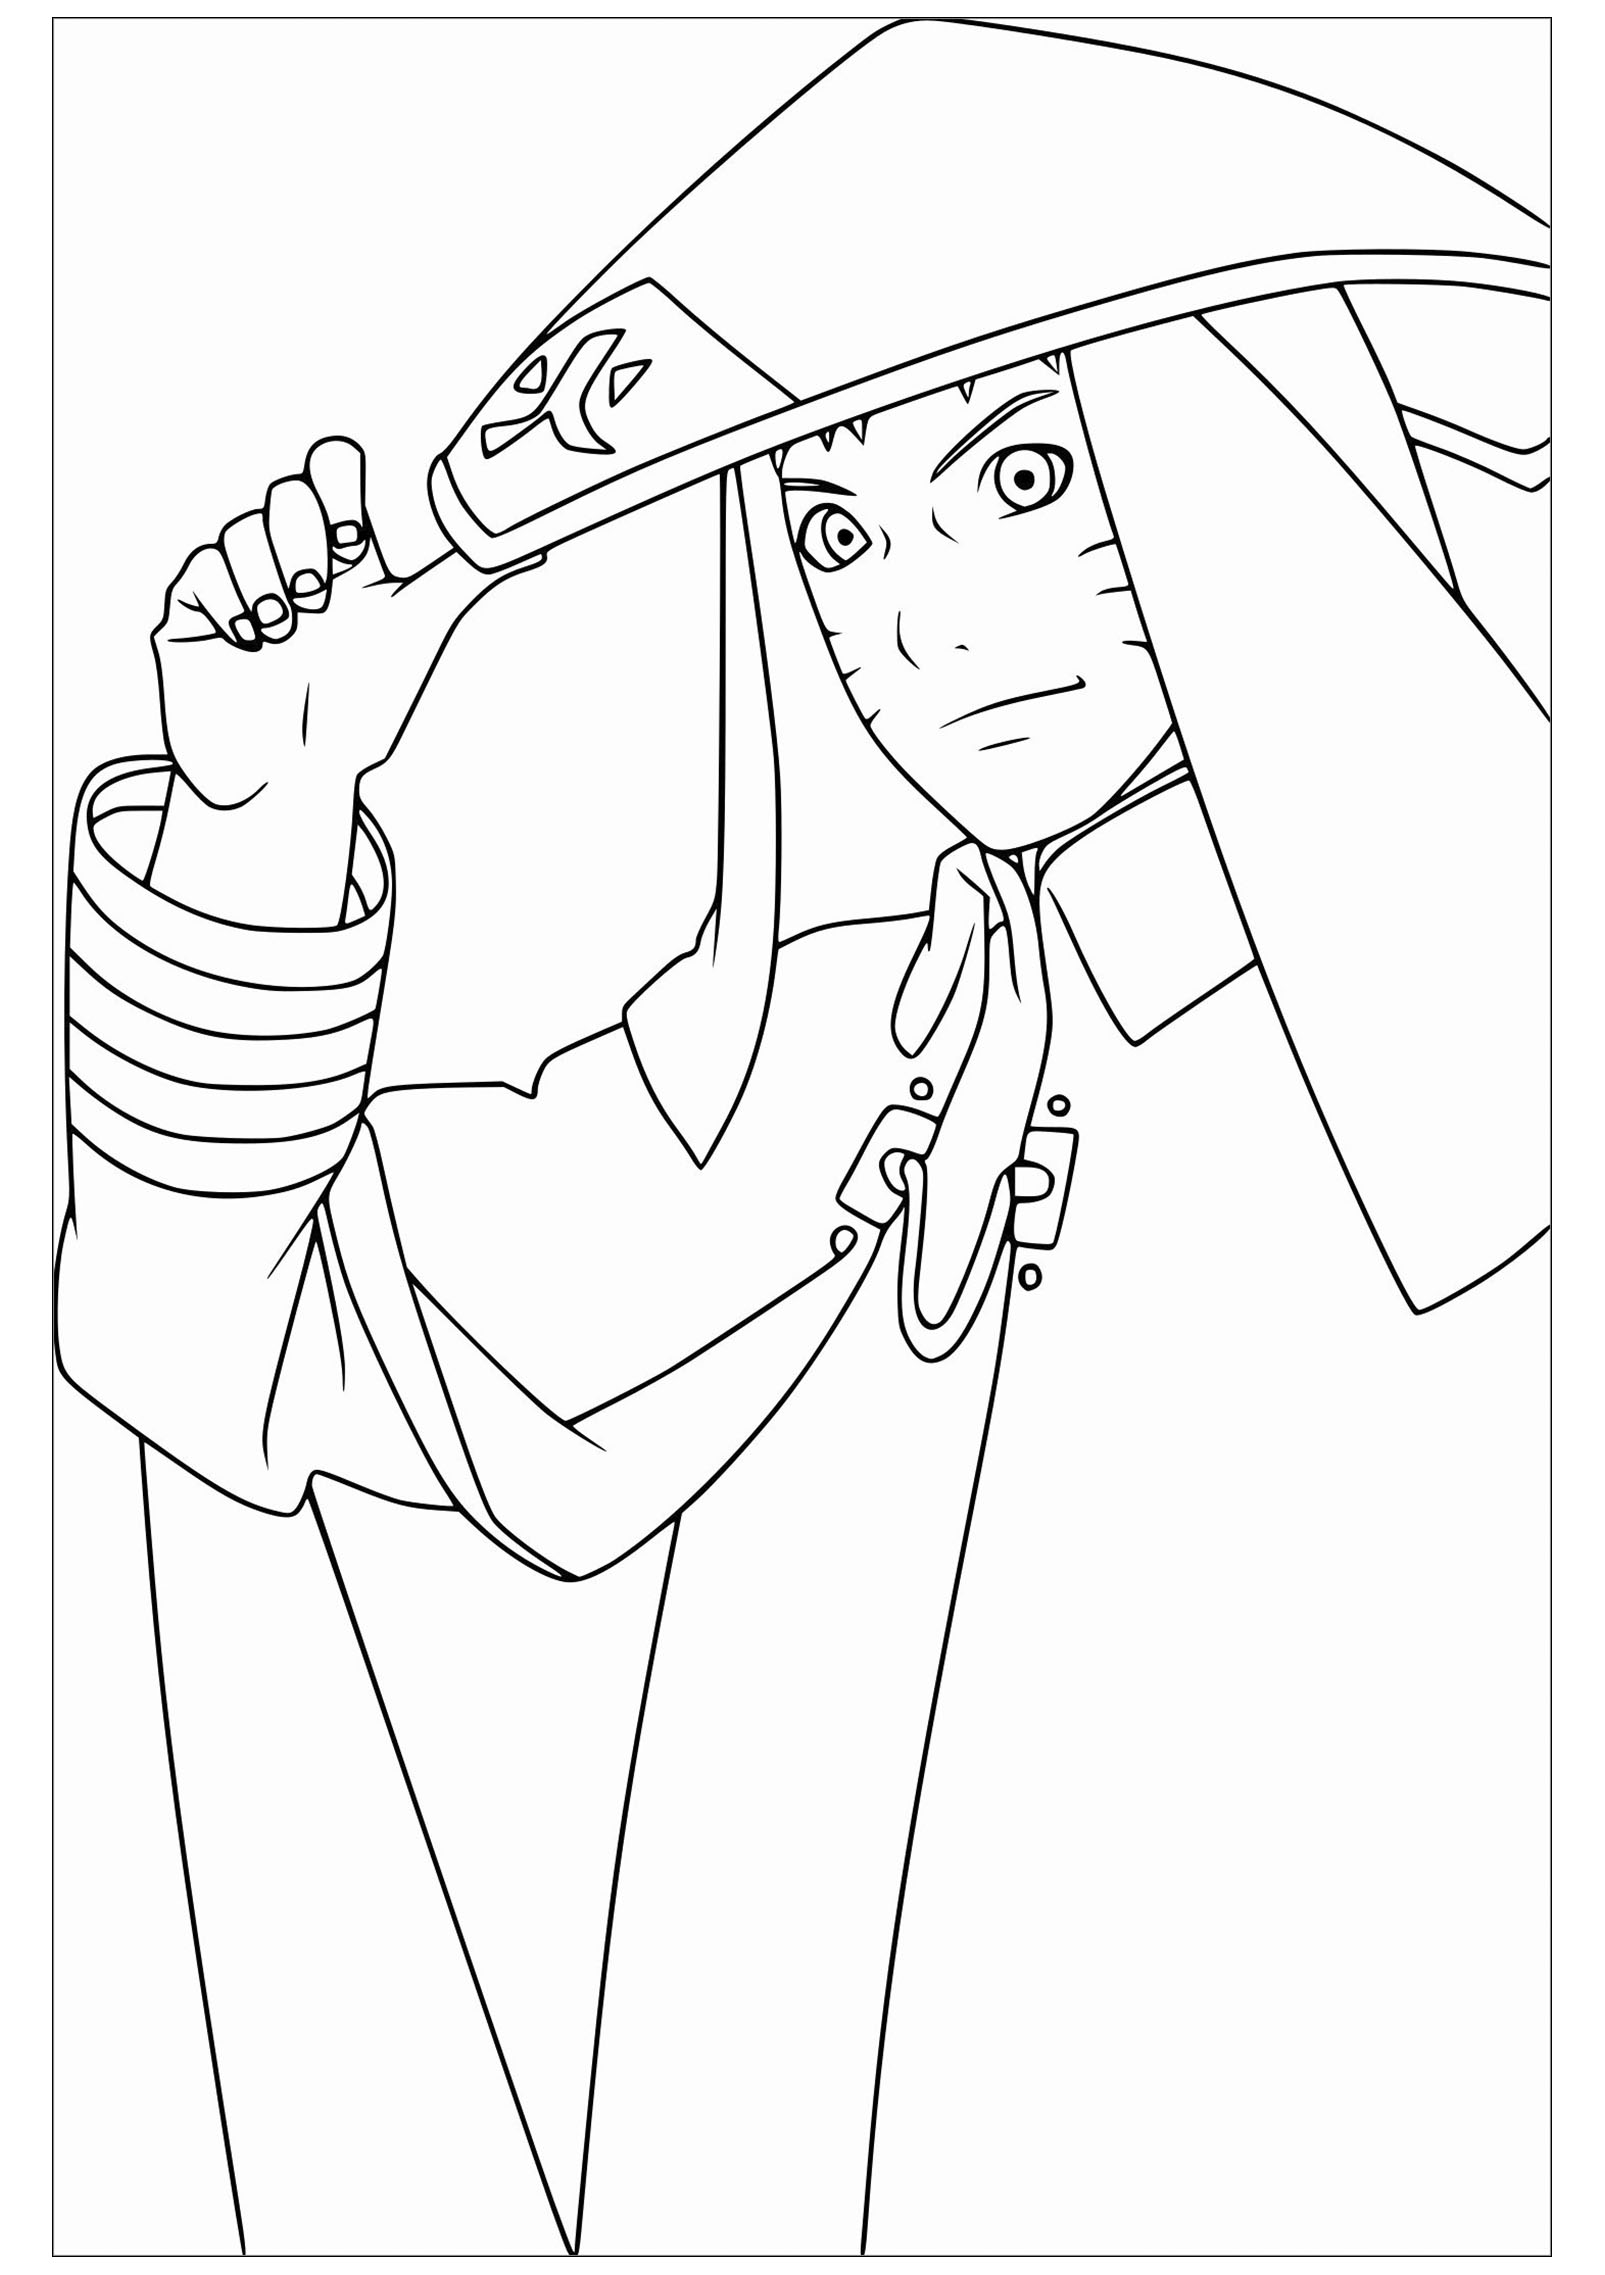 naruto coloring pages naruto to color for kids naruto kids coloring pages coloring pages naruto